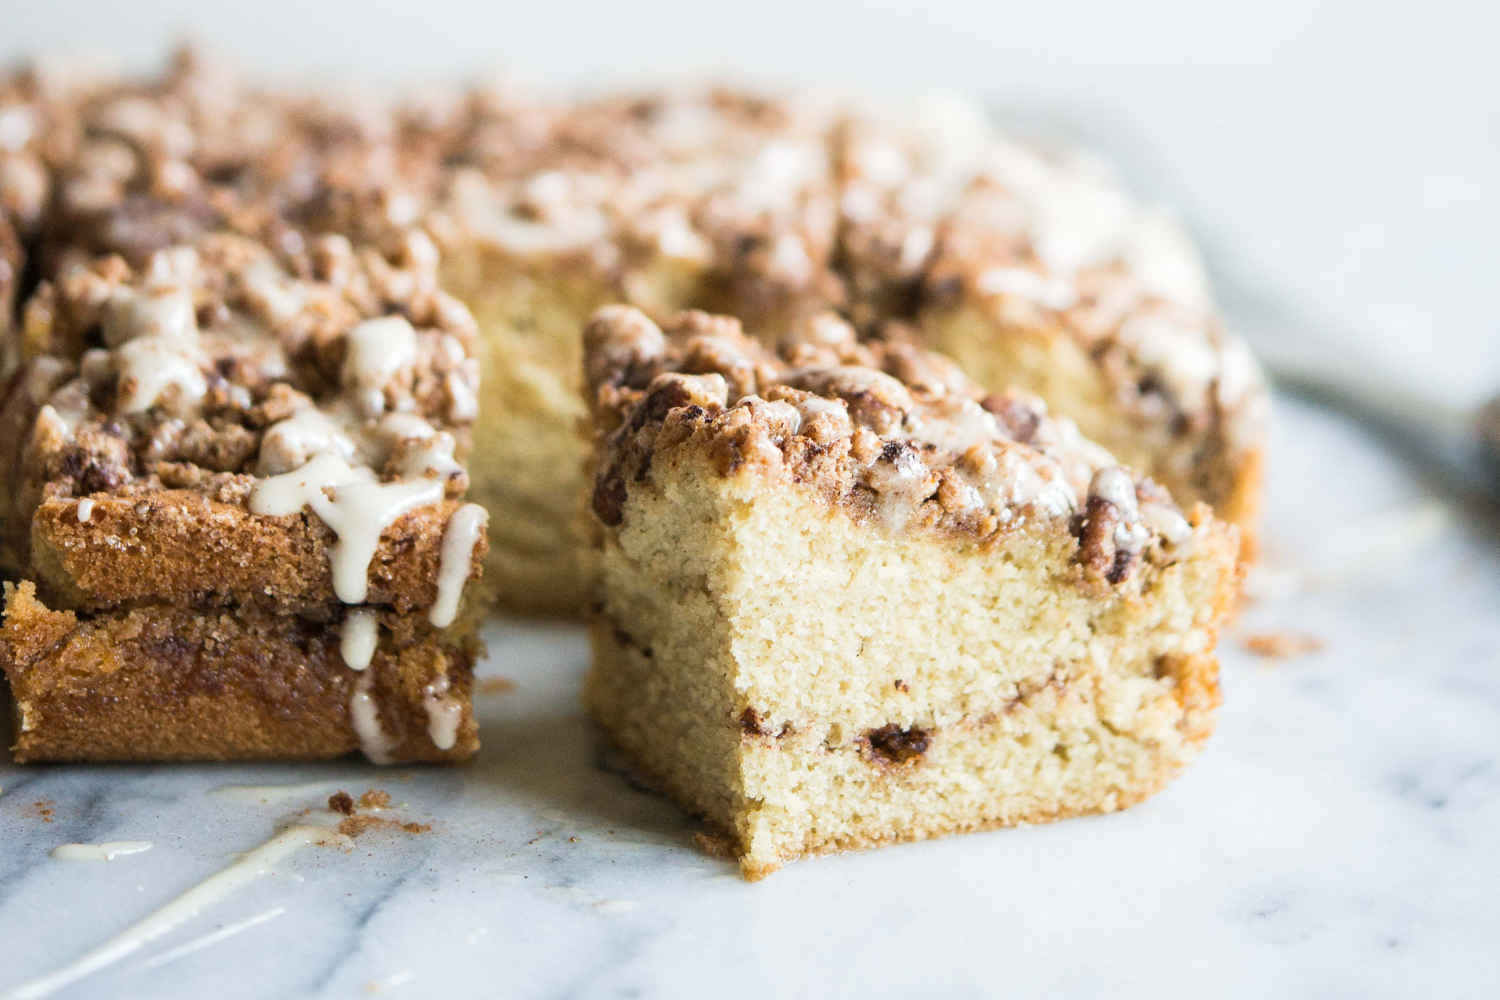 cinnamon roll coffee cake with a swirl of cinnamon sugar in the middle on a marble surface